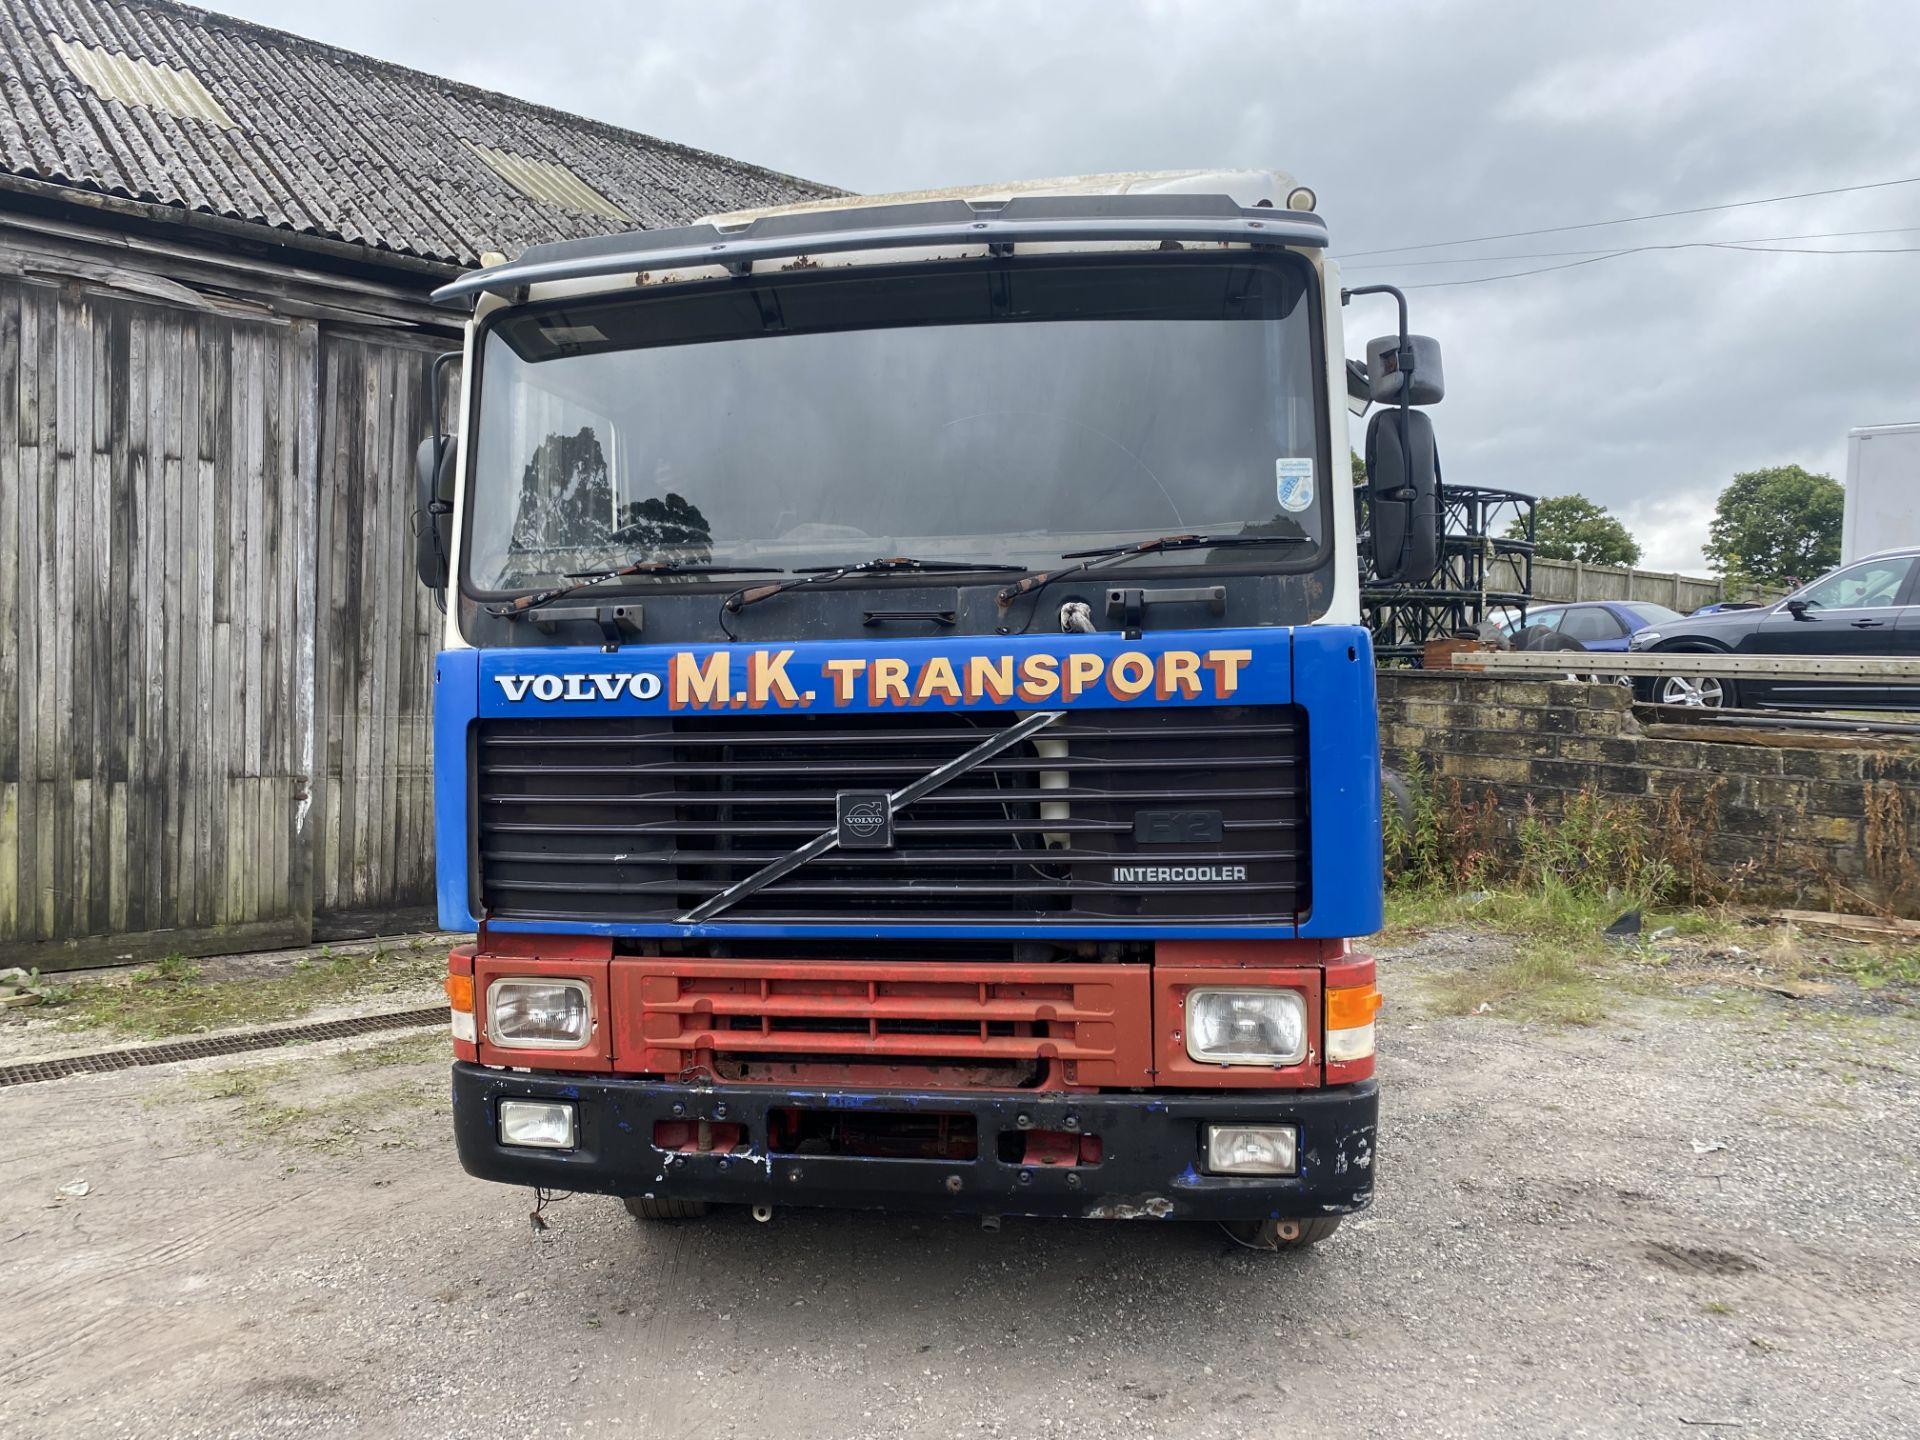 Volvo F12 400 4x2 Tractor Unit, registration no. H81 HKC, date first registered 01/01/1991, for - Image 5 of 21